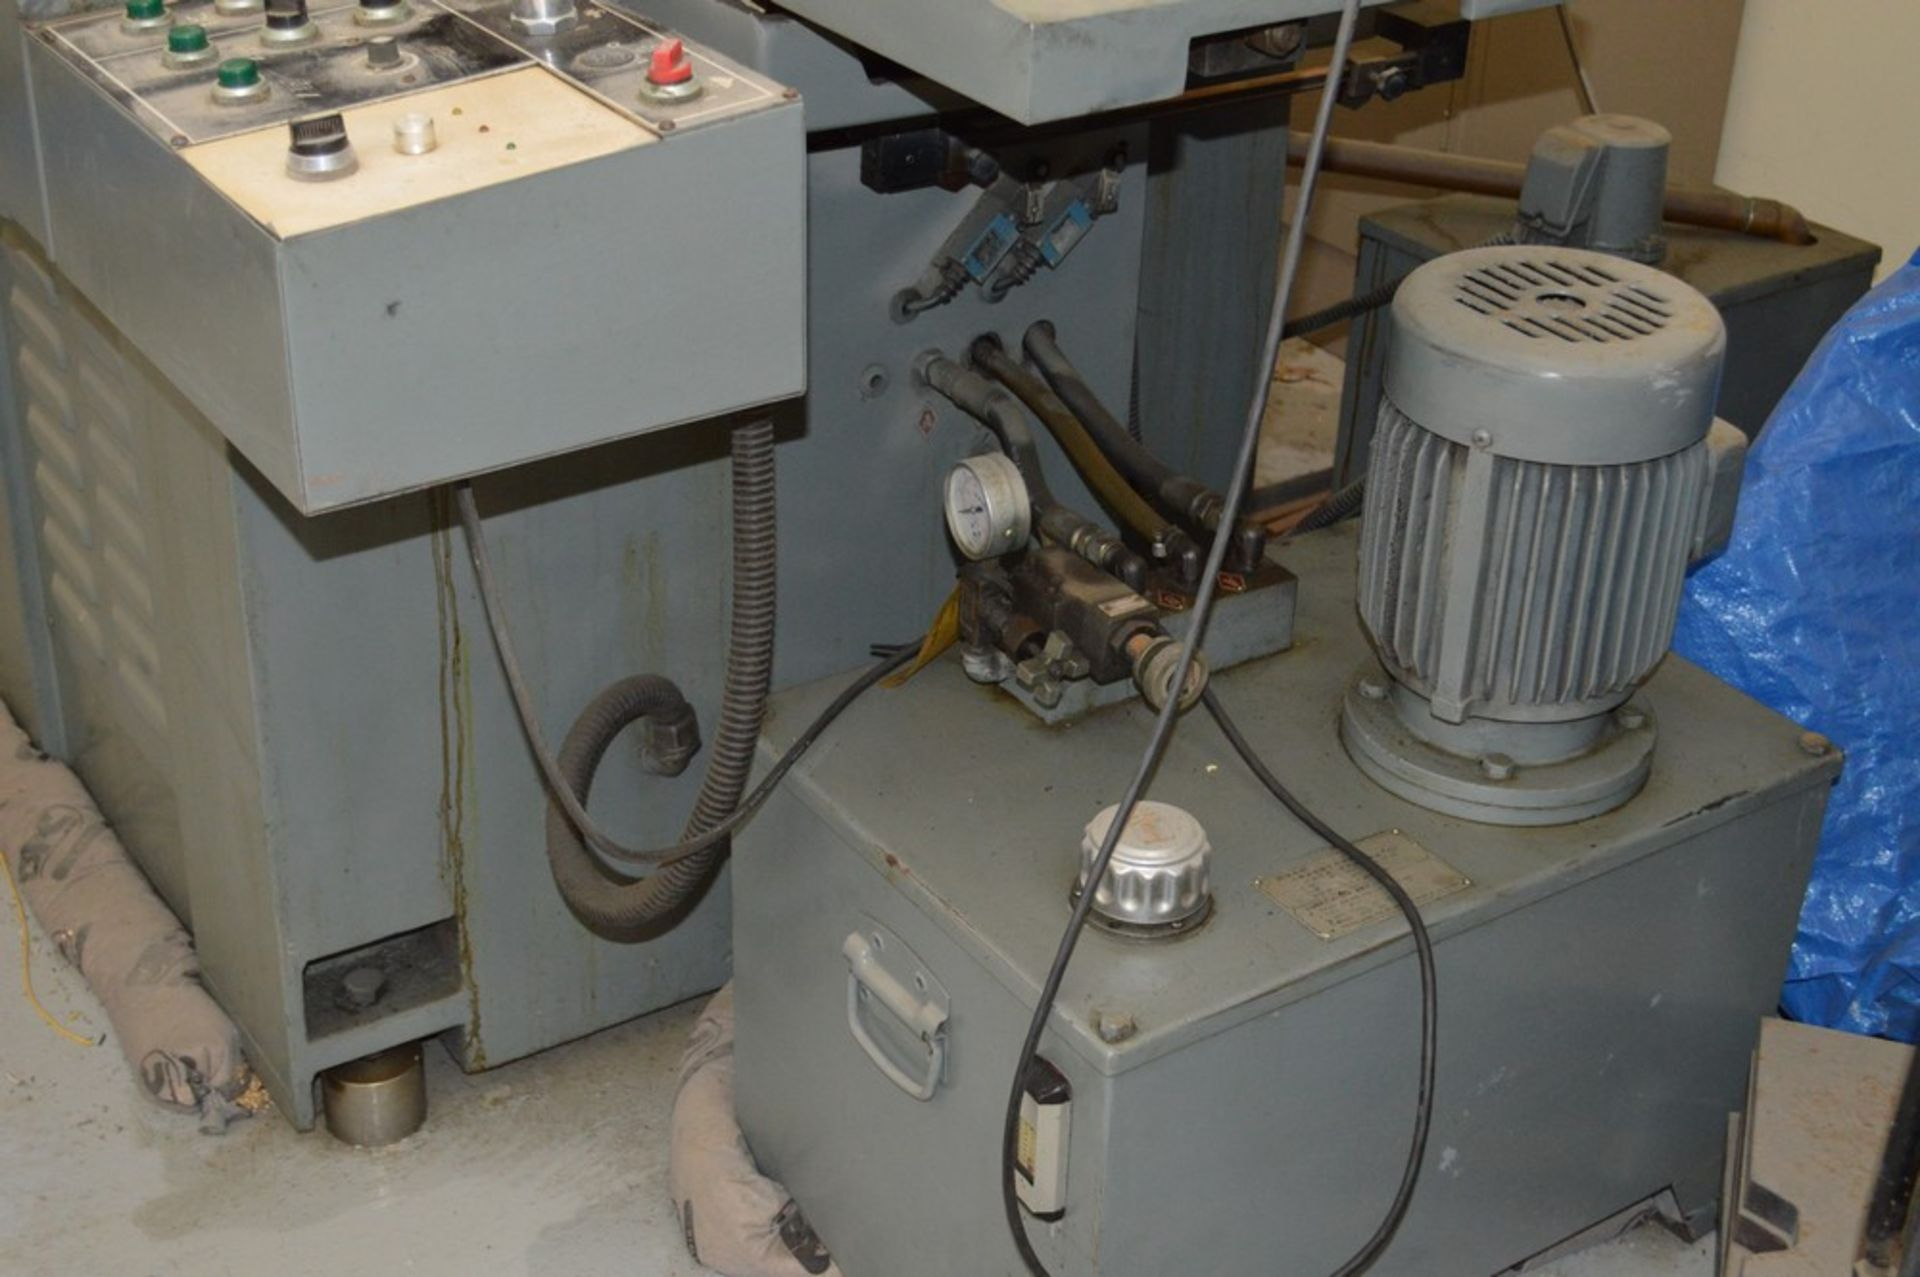 Supertec, STP-H1428 AD Grinder, Full three axis hydraulics, 12 x 27 magnetic chuck - Image 5 of 9